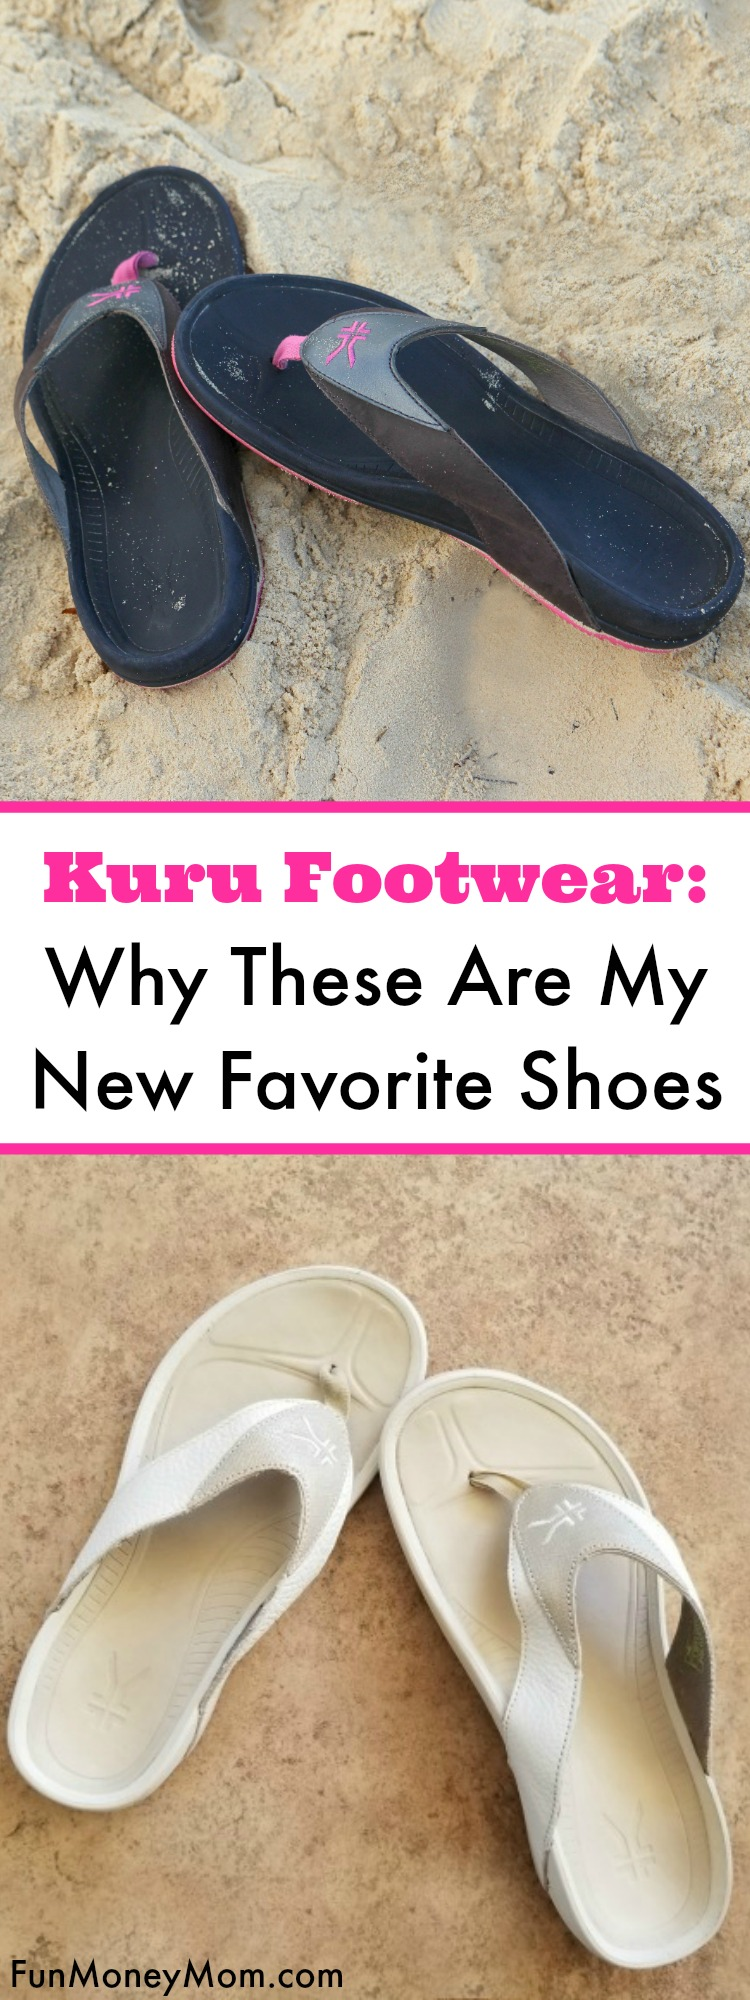 Kuru Shoes Review - When I was diagnosed with planters fasciitis, I wasn't happy about having to give up my flimsy flip flops. That was until I discovered my new favorite shoe. Check out my Kuru footwear review so see why I'm wearing these pretty much every day now! #ad